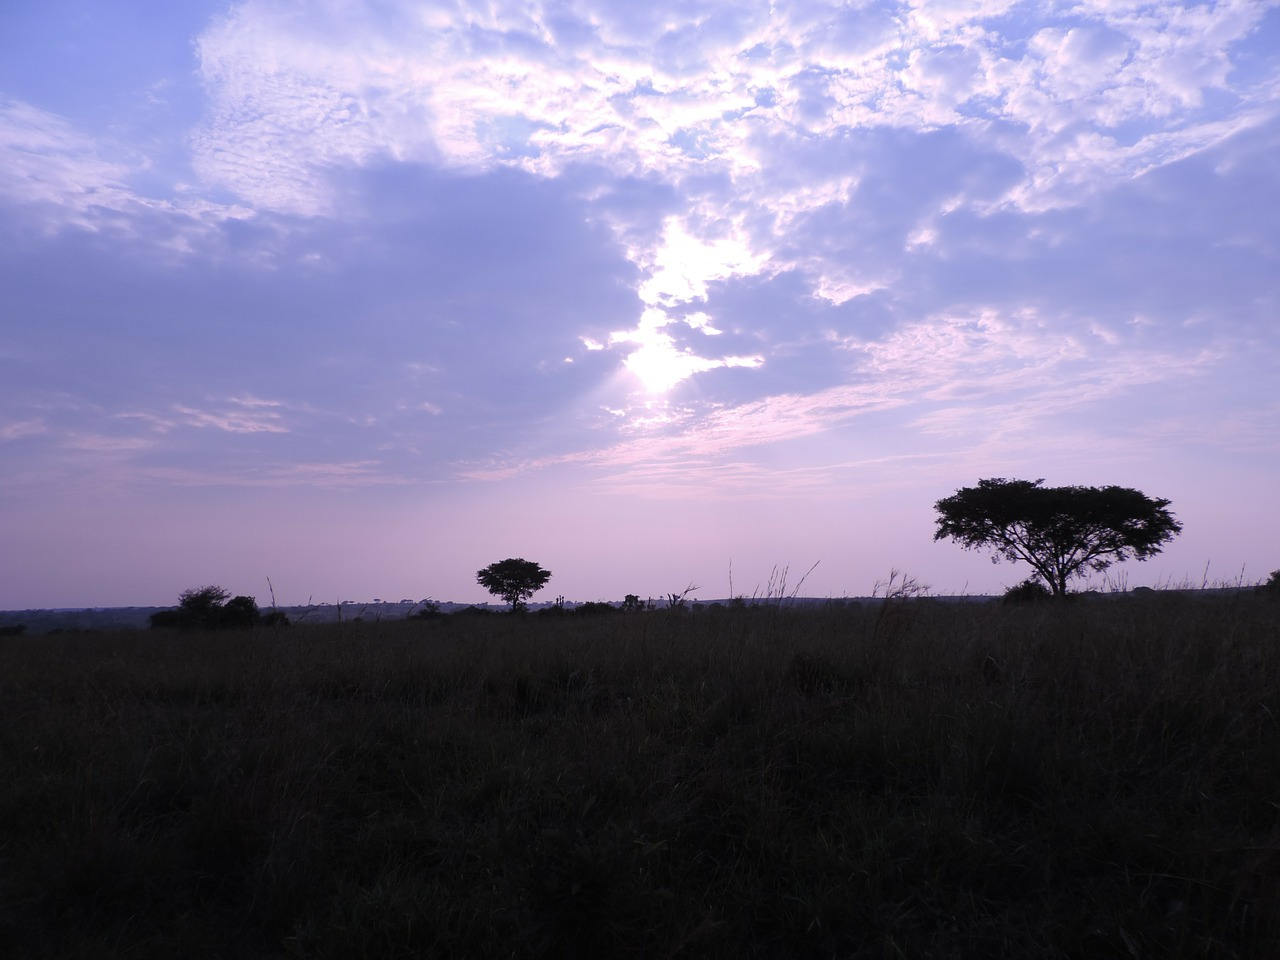 uganda twilight landscape free photo